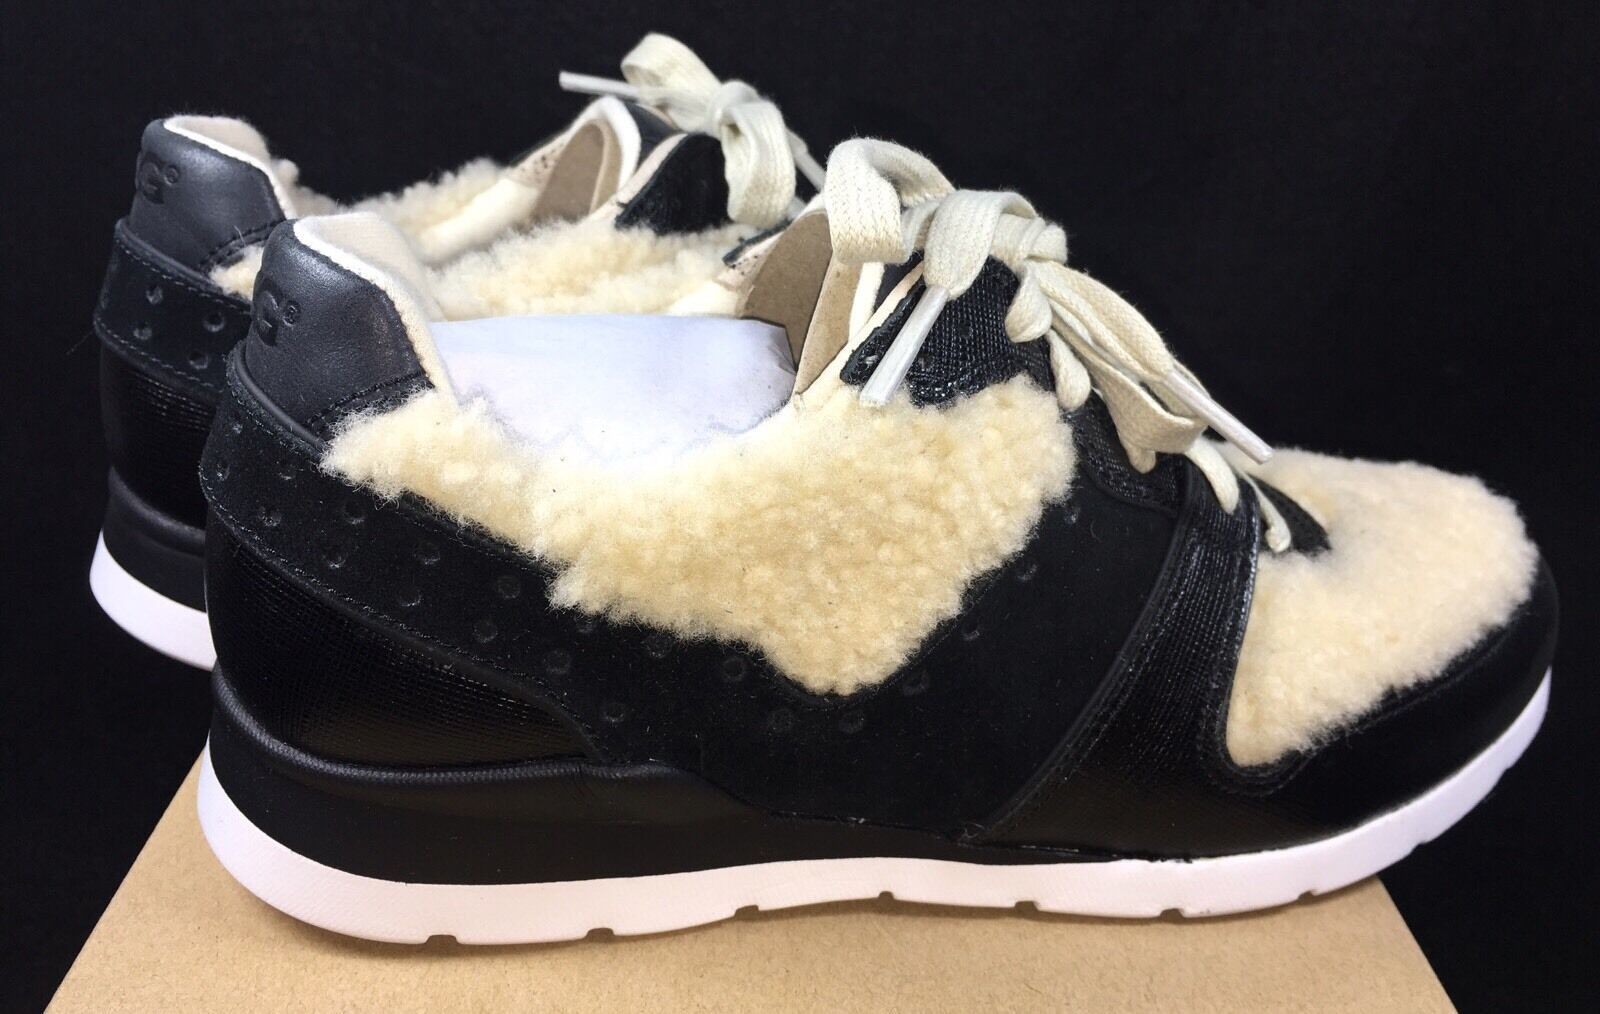 UGG Deaven Sheepskin Sneaker Athletic Fashion Shoes 1014480 Black Tan Shearling